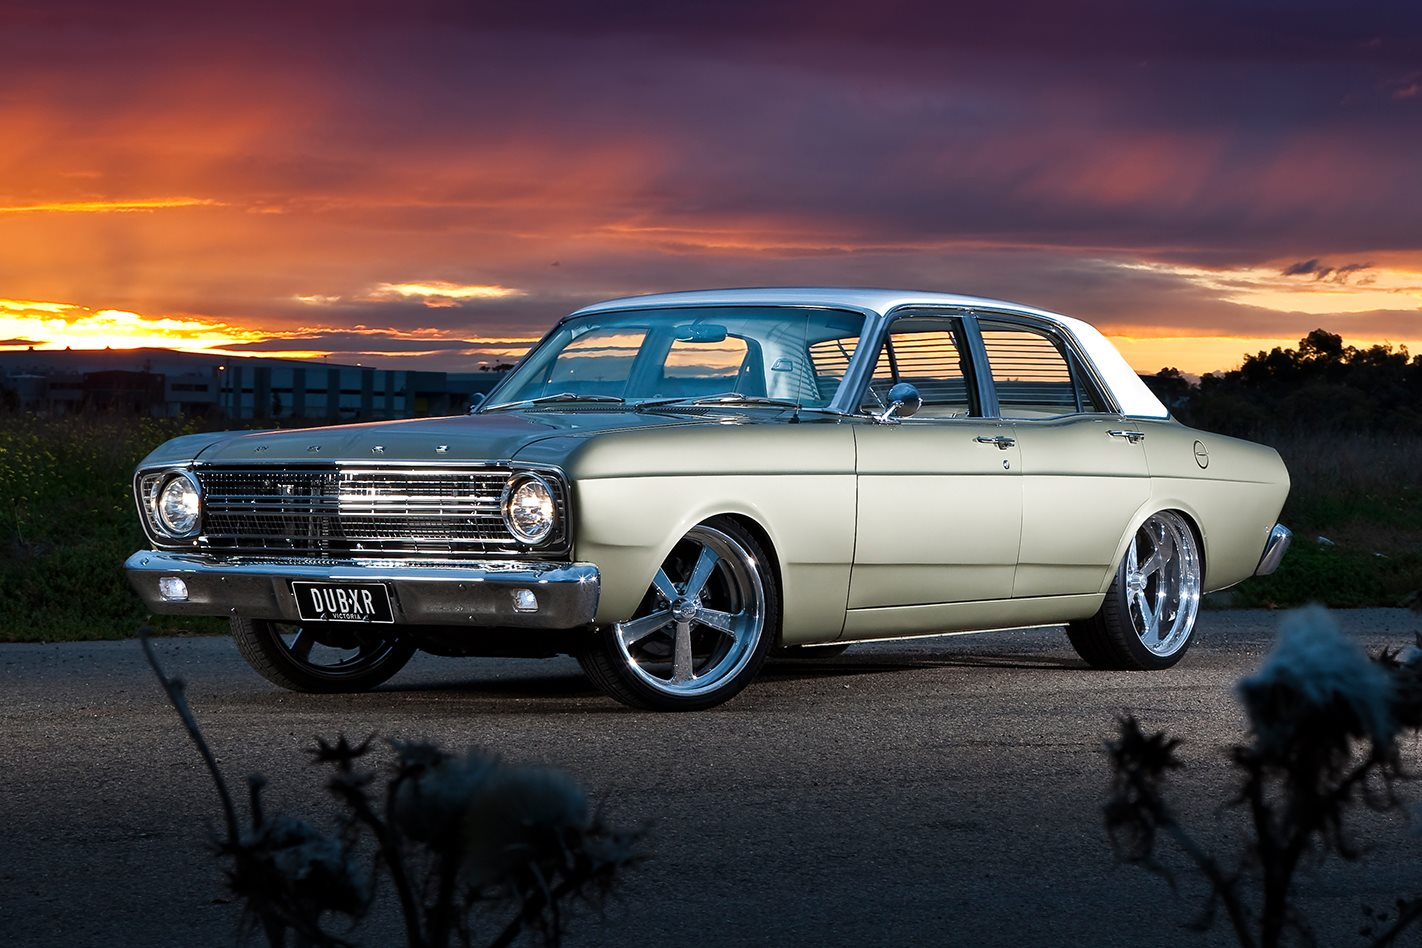 1968 Ford Xr Falcon 500 Streeter